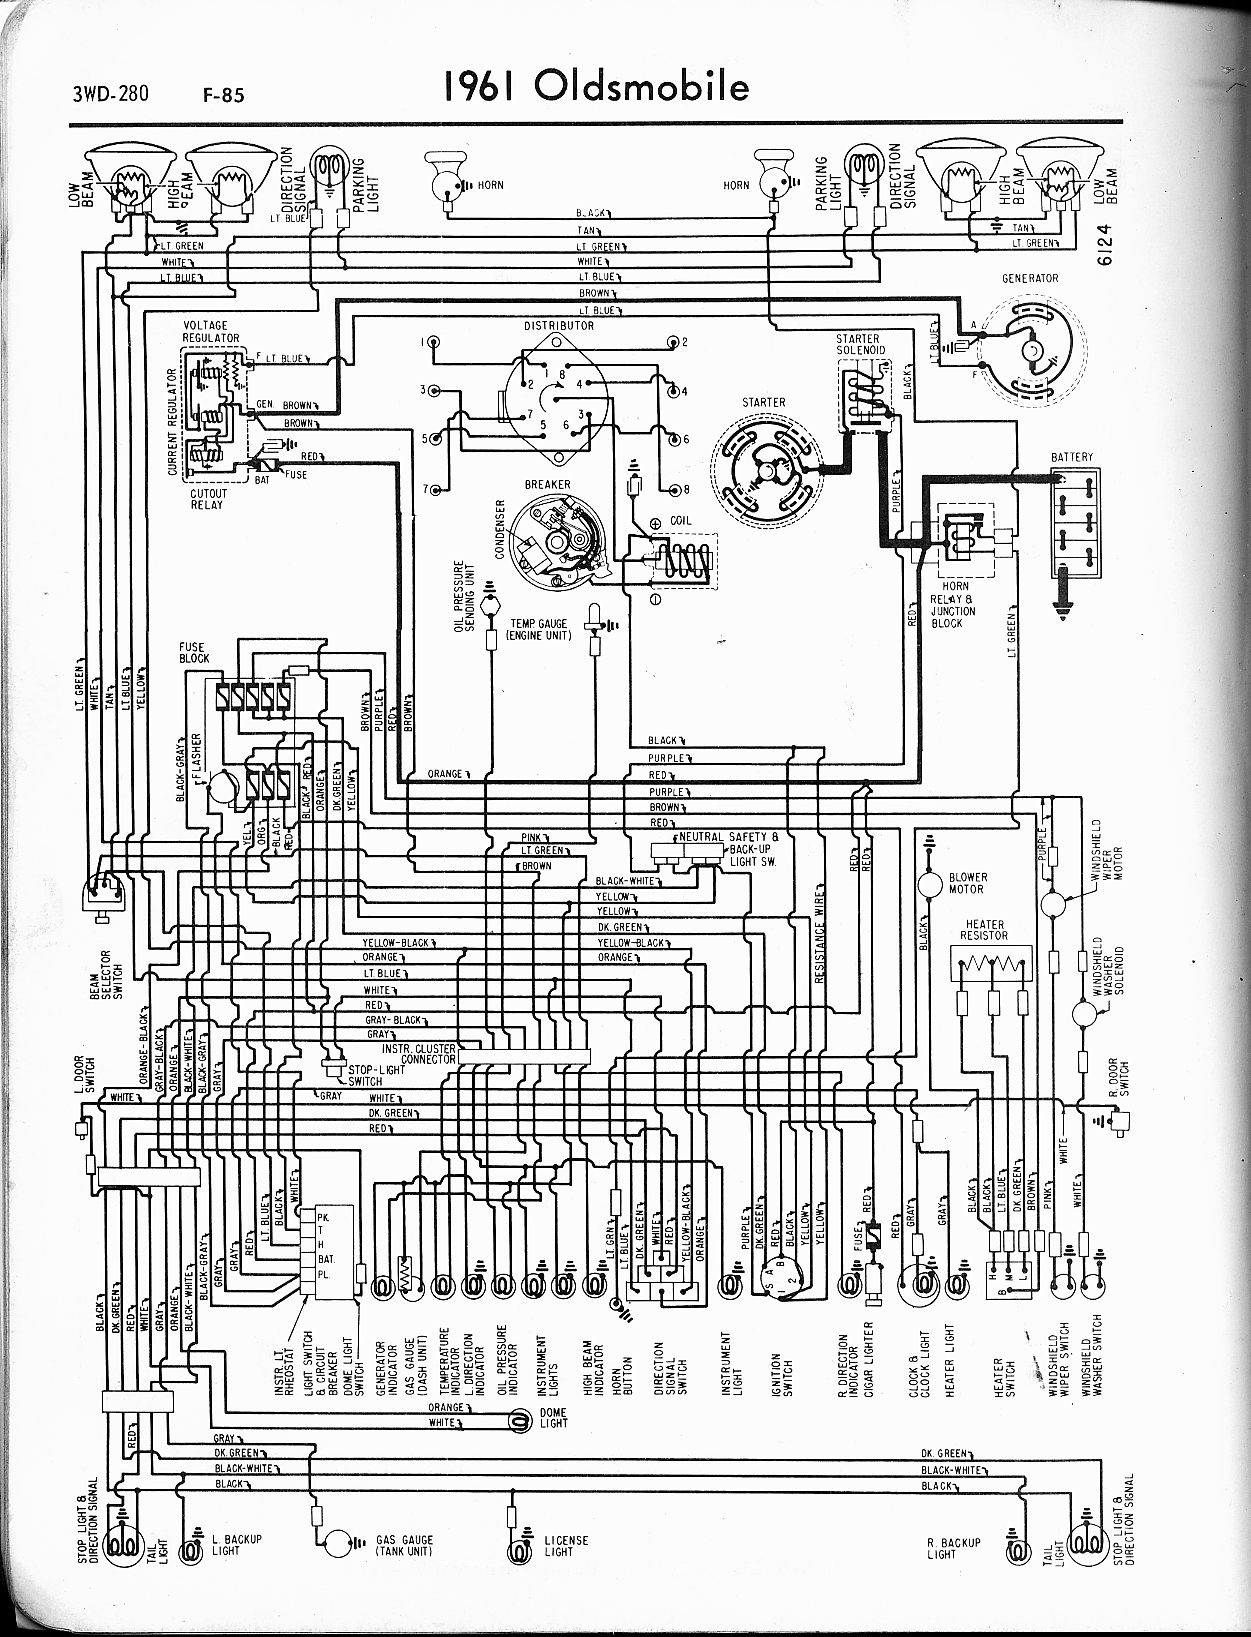 oldsmobile wiring diagrams the old car manual project rh  oldcarmanualproject com Chrysler Ignition Coil Wiring Diagram Chrysler  Ignition Coil Wiring Diagram